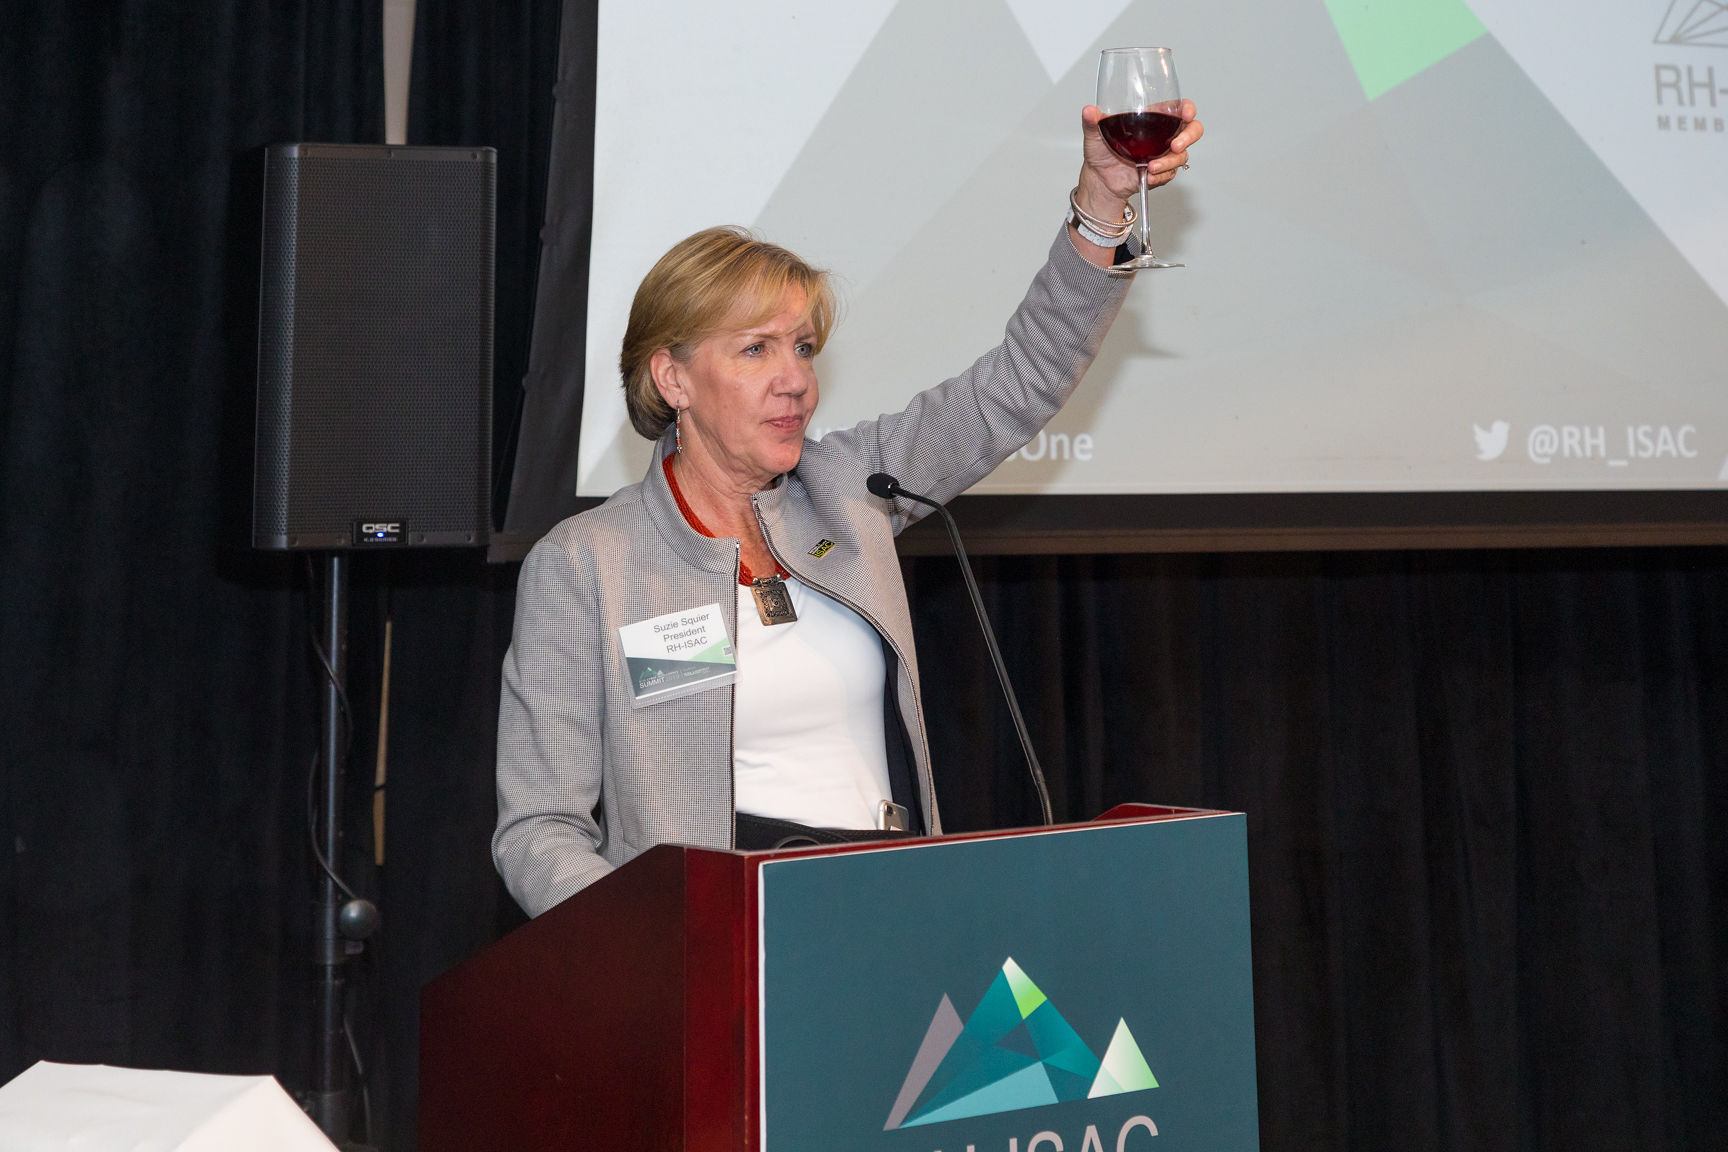 A women in a grey jacket lifts a glass of wine at a podium